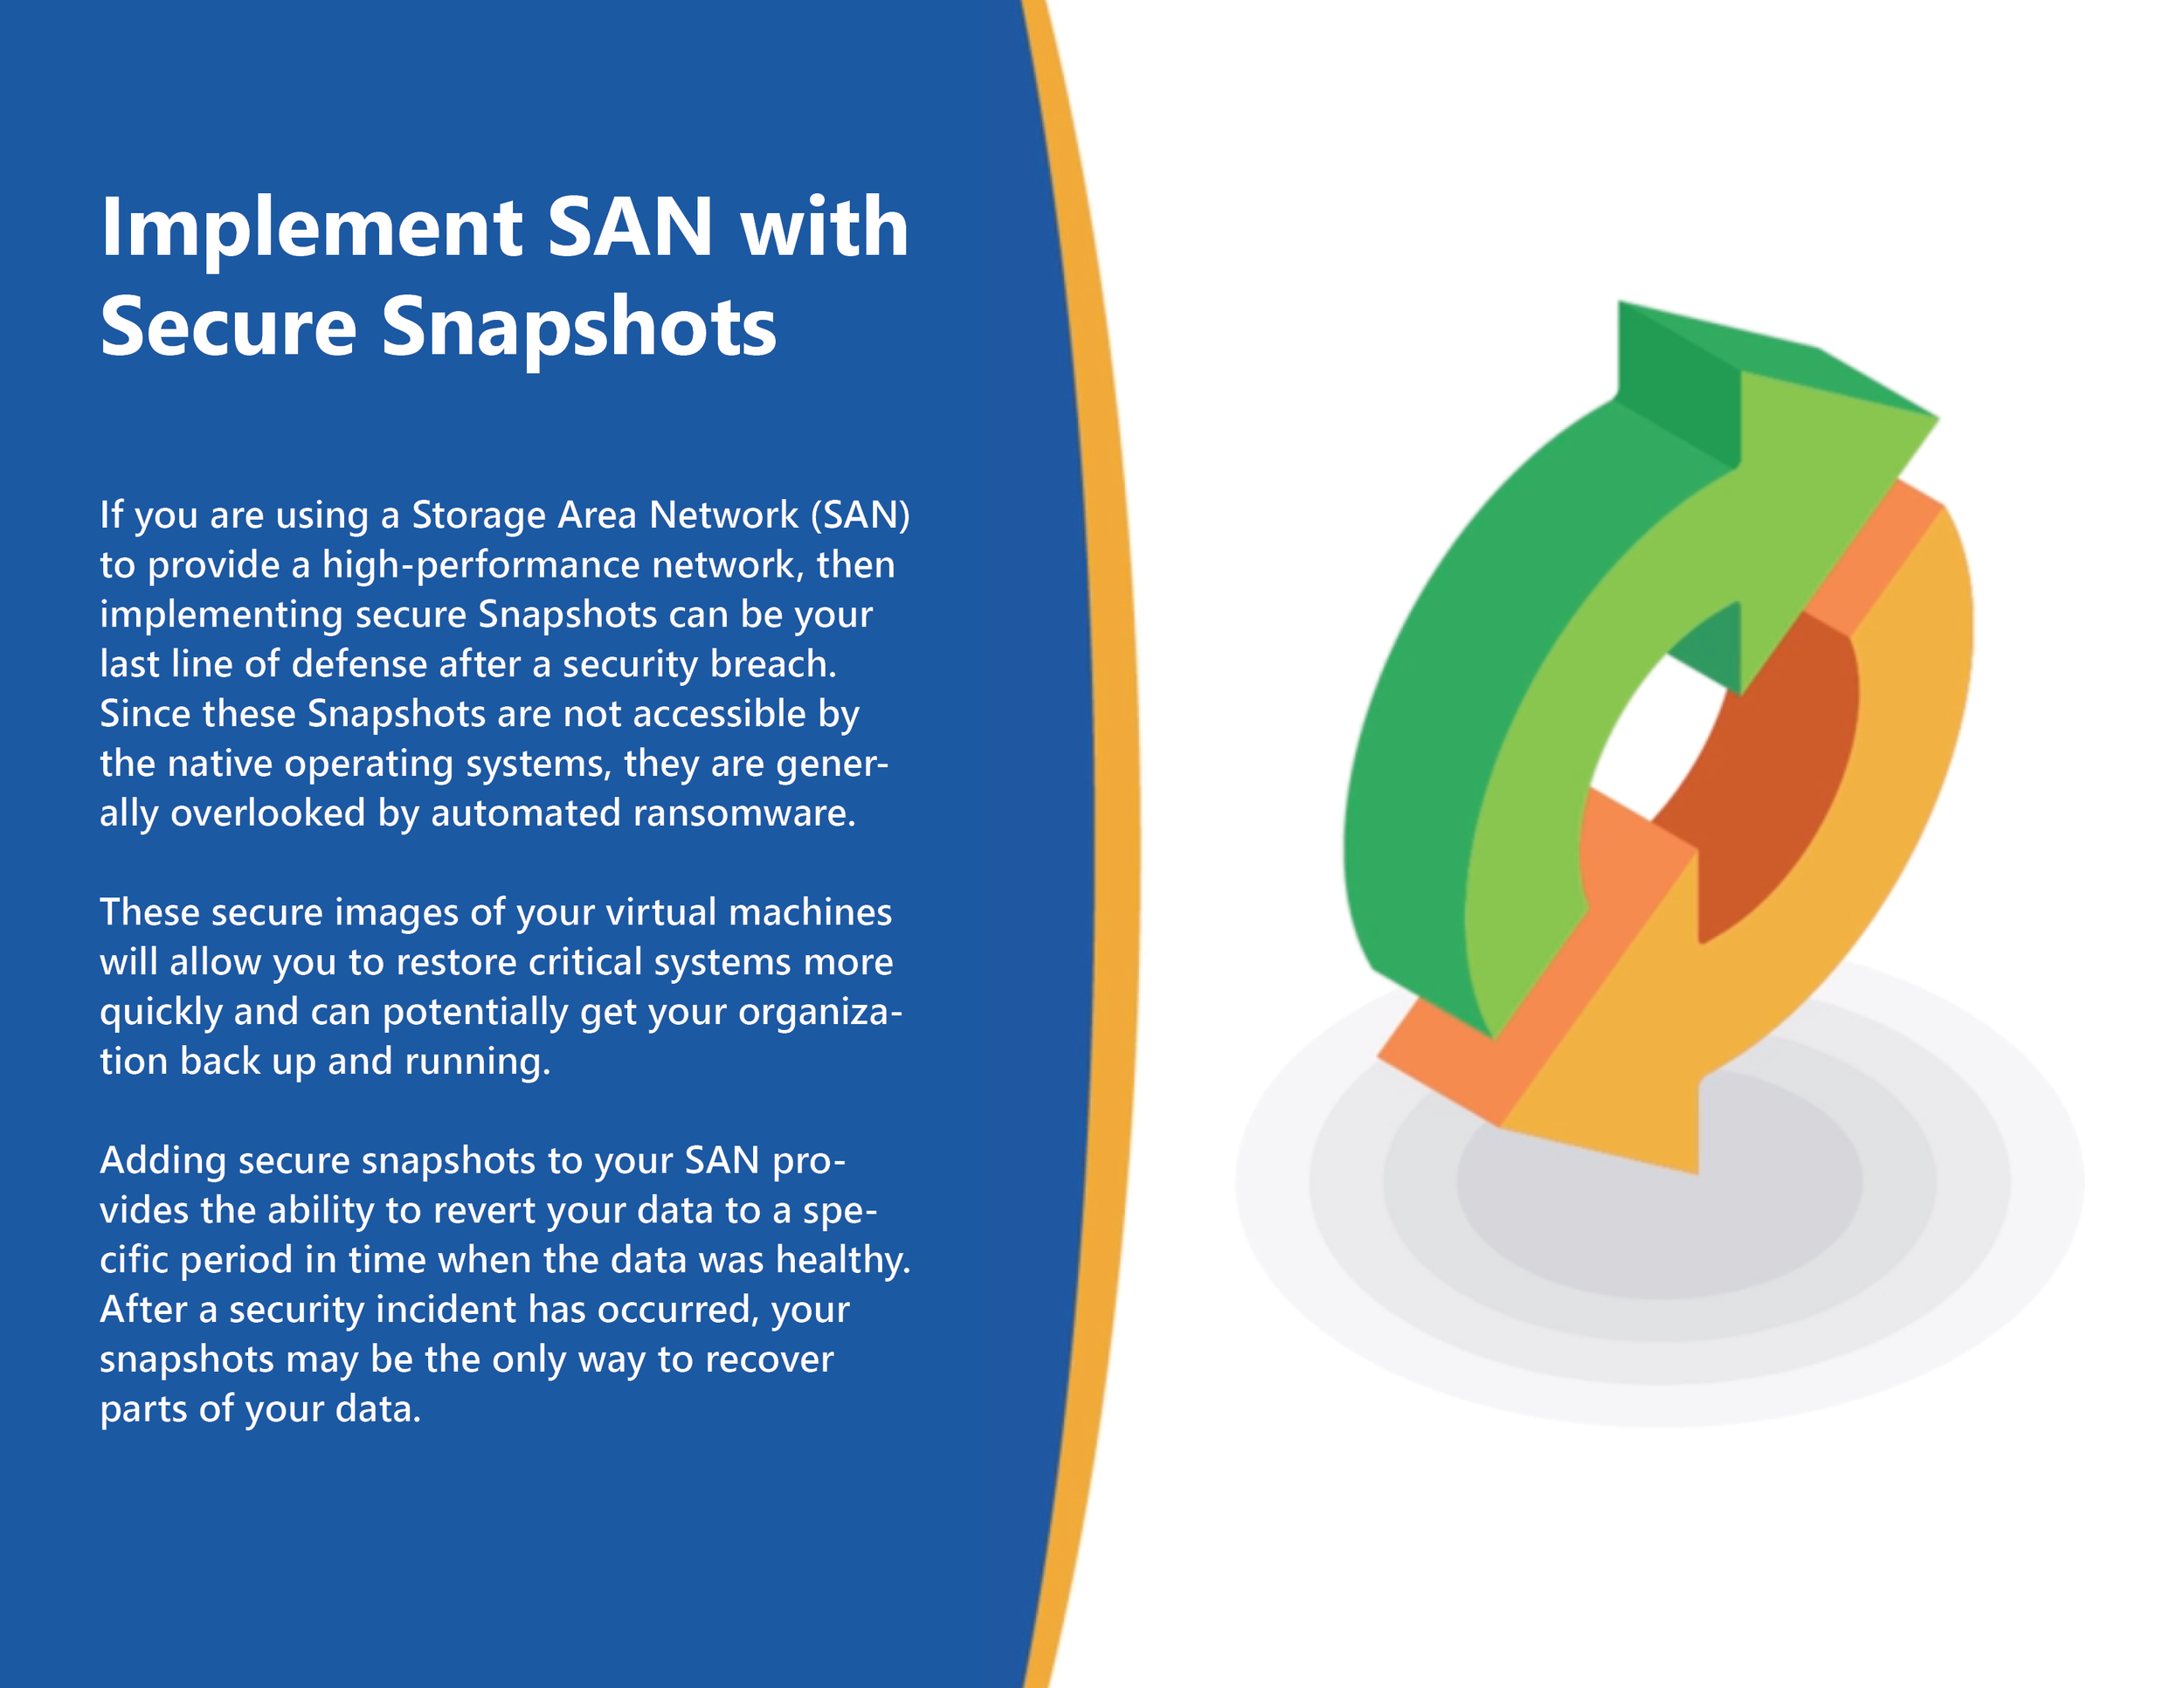 Implement SAN with Secure Snapshots